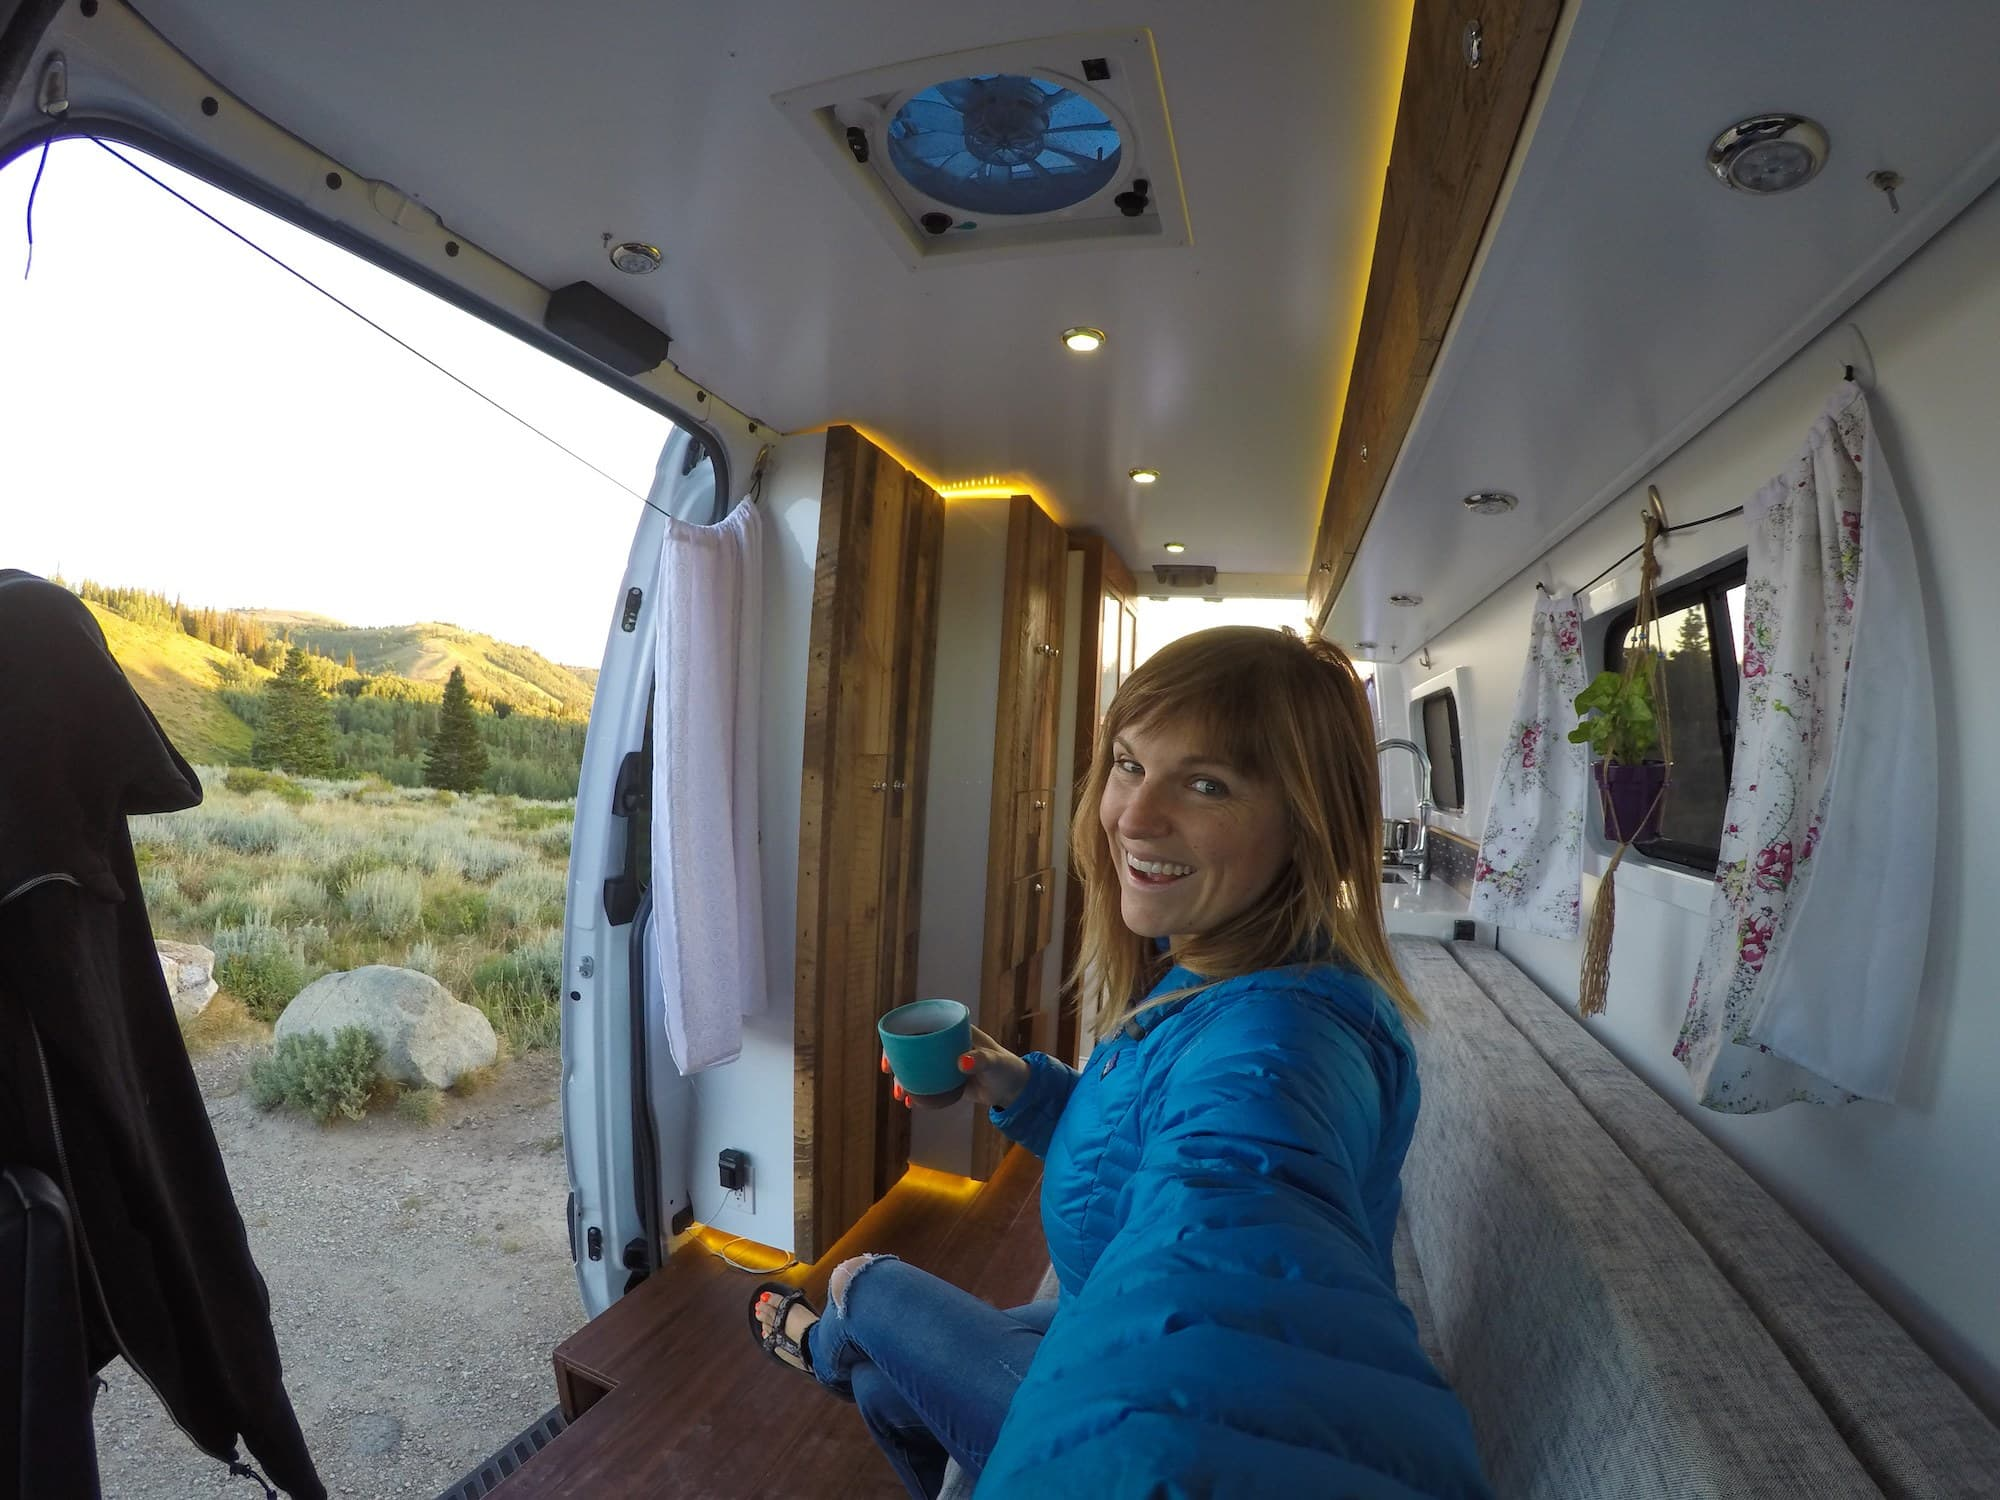 Looking to buy your dream Sprinter Van so you can hit the road on an adventure? Learn about the different places you can search for a Sprinter Van for sale, whether you want a new 4x4 or a used camper van that's already broken in.